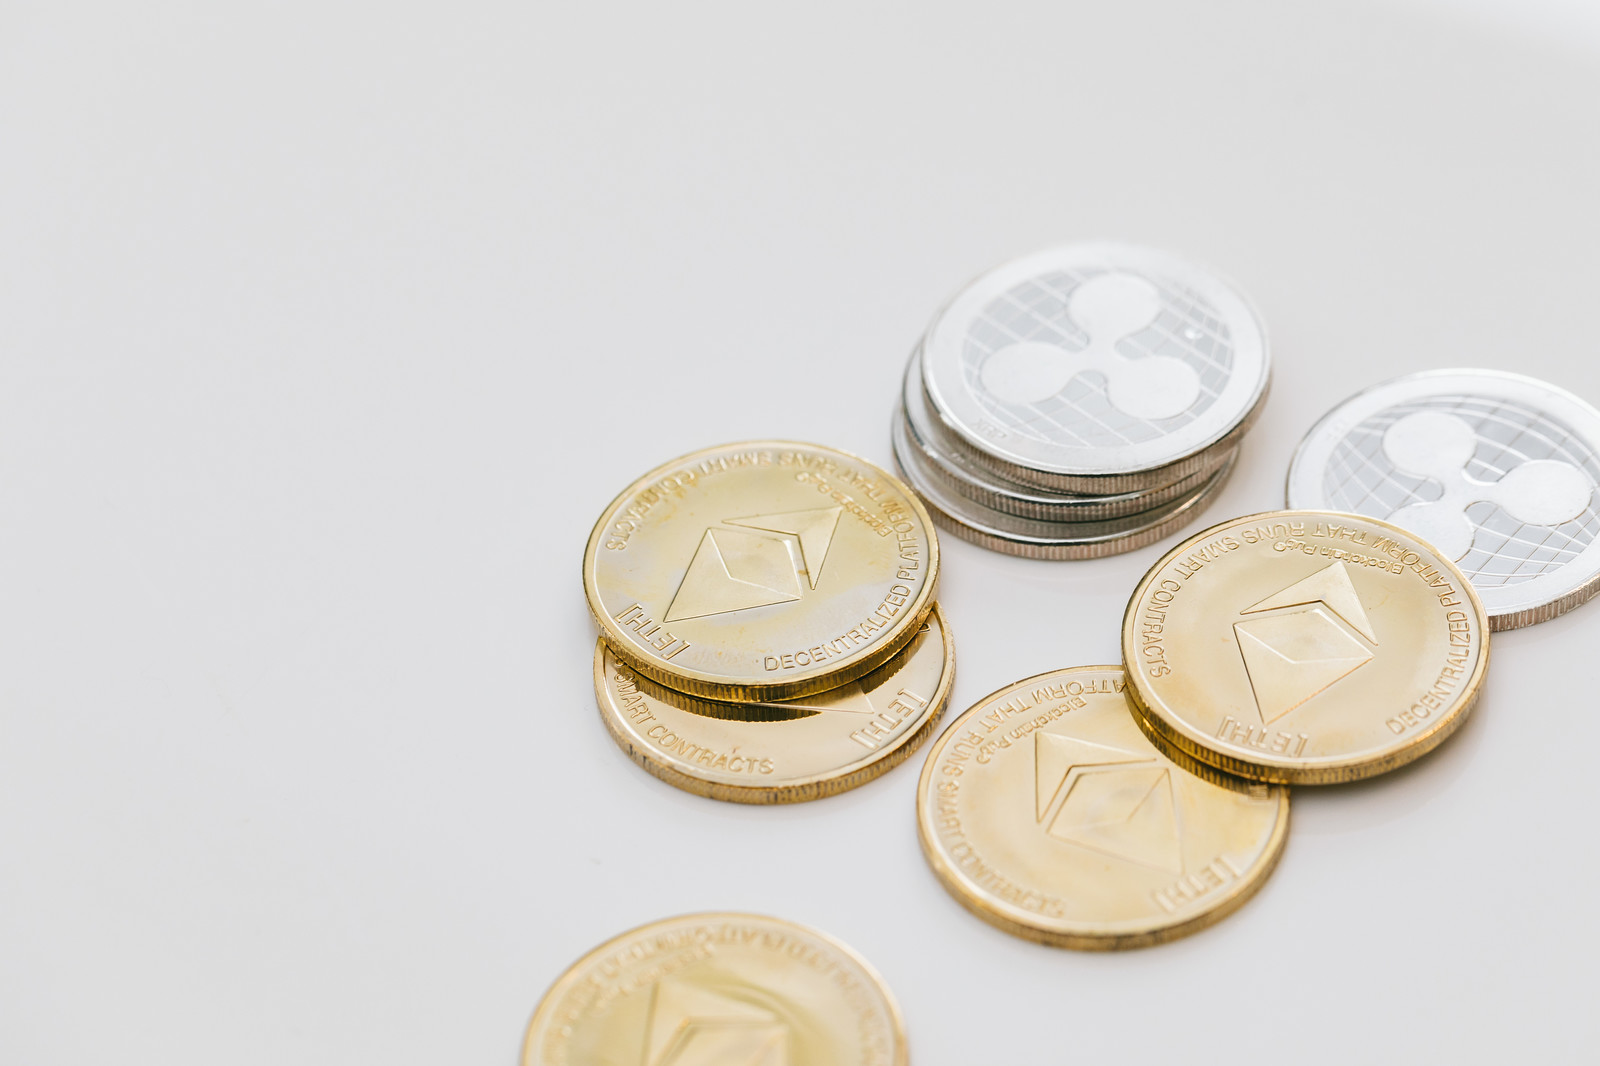 【VOL154】仮想通貨を法人で取り扱うメリットとデメリット